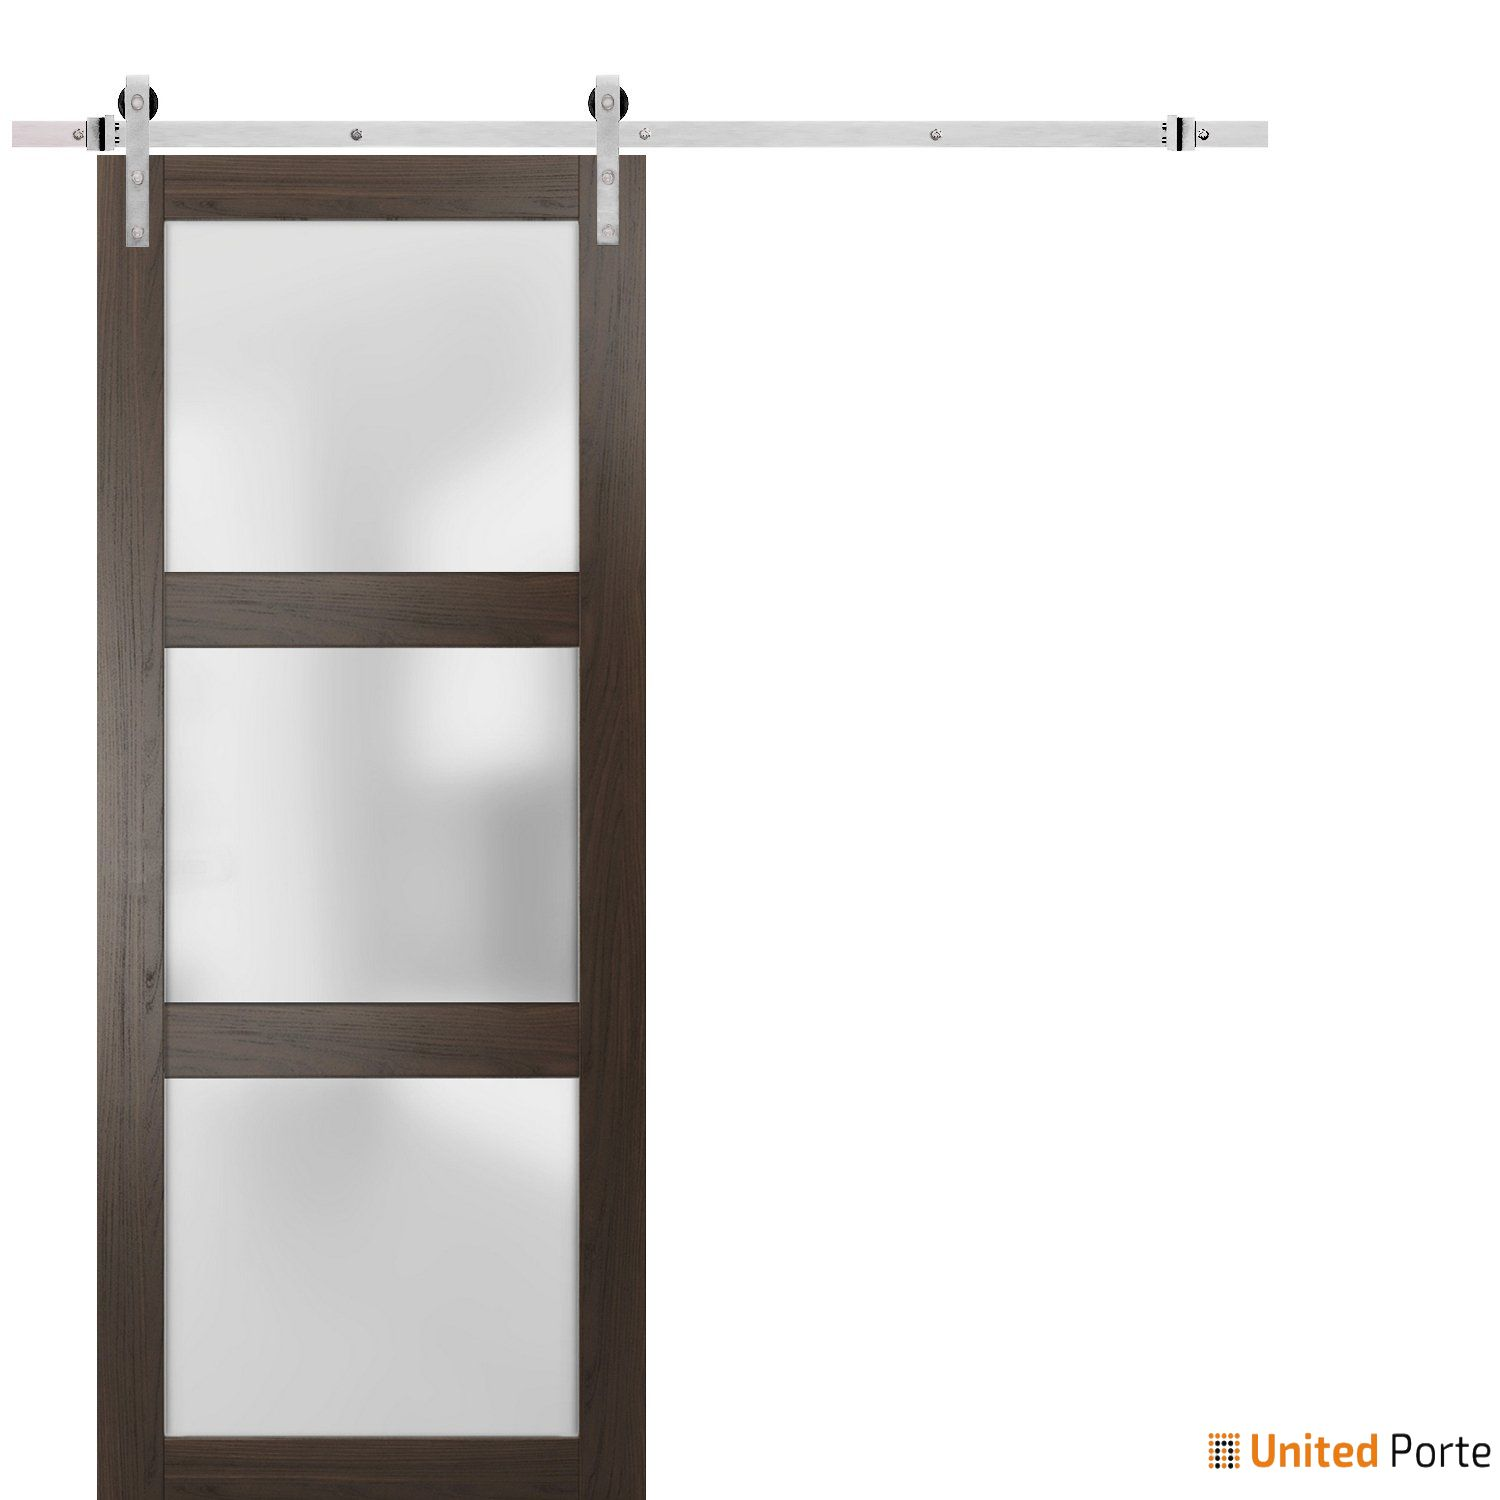 Lucia 2552 Chocolate Ash Sturdy Barn Door Frosted Glass with Stainless Hardware | Solid Panel Interior Barn Doors